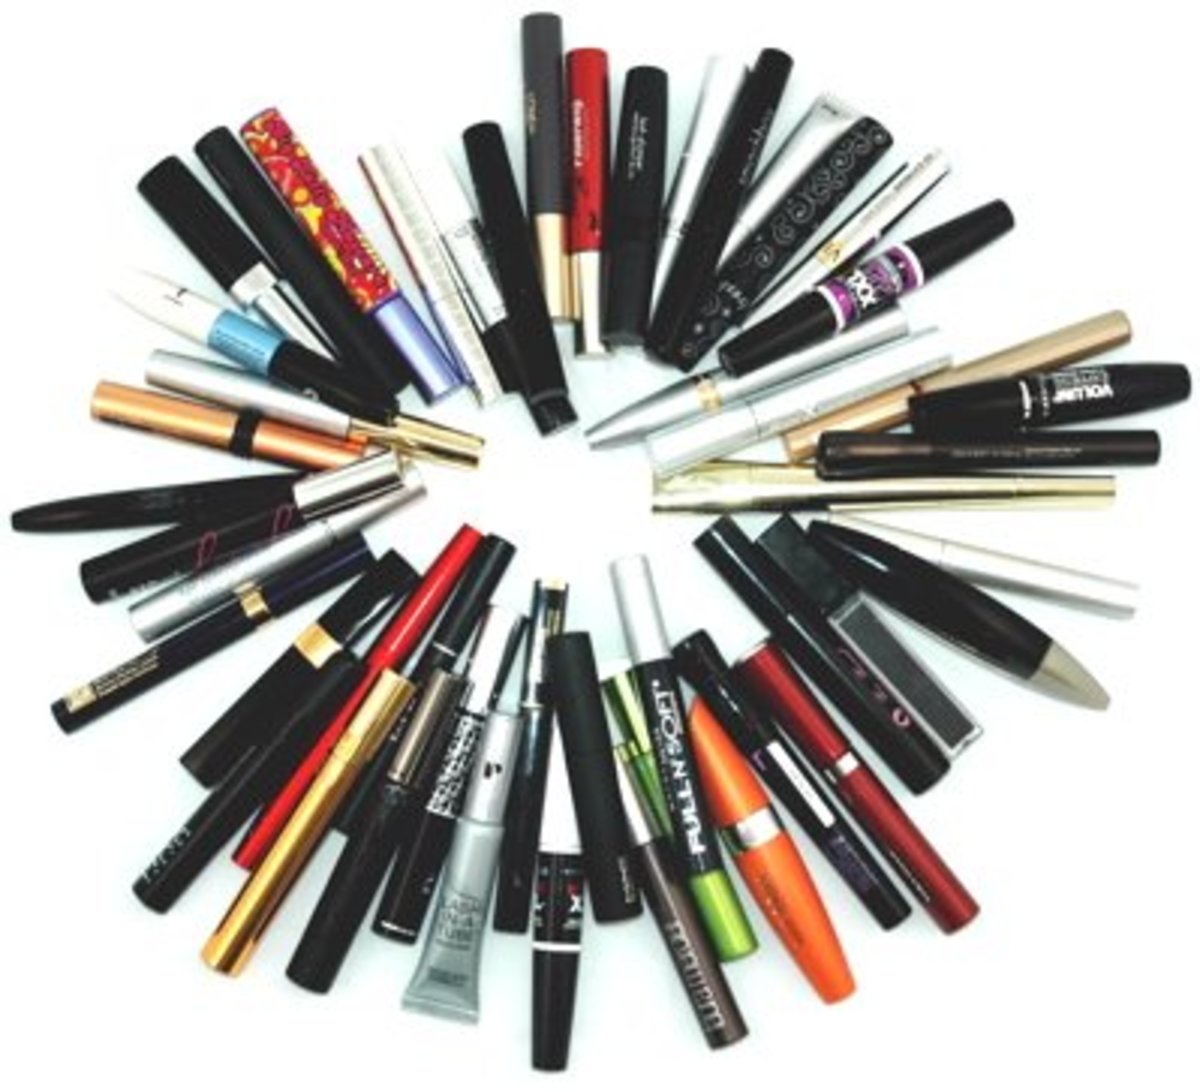 There are tons of mascaras available for sale. Find out which are the best for lengthening, volumizing, curling, and more.